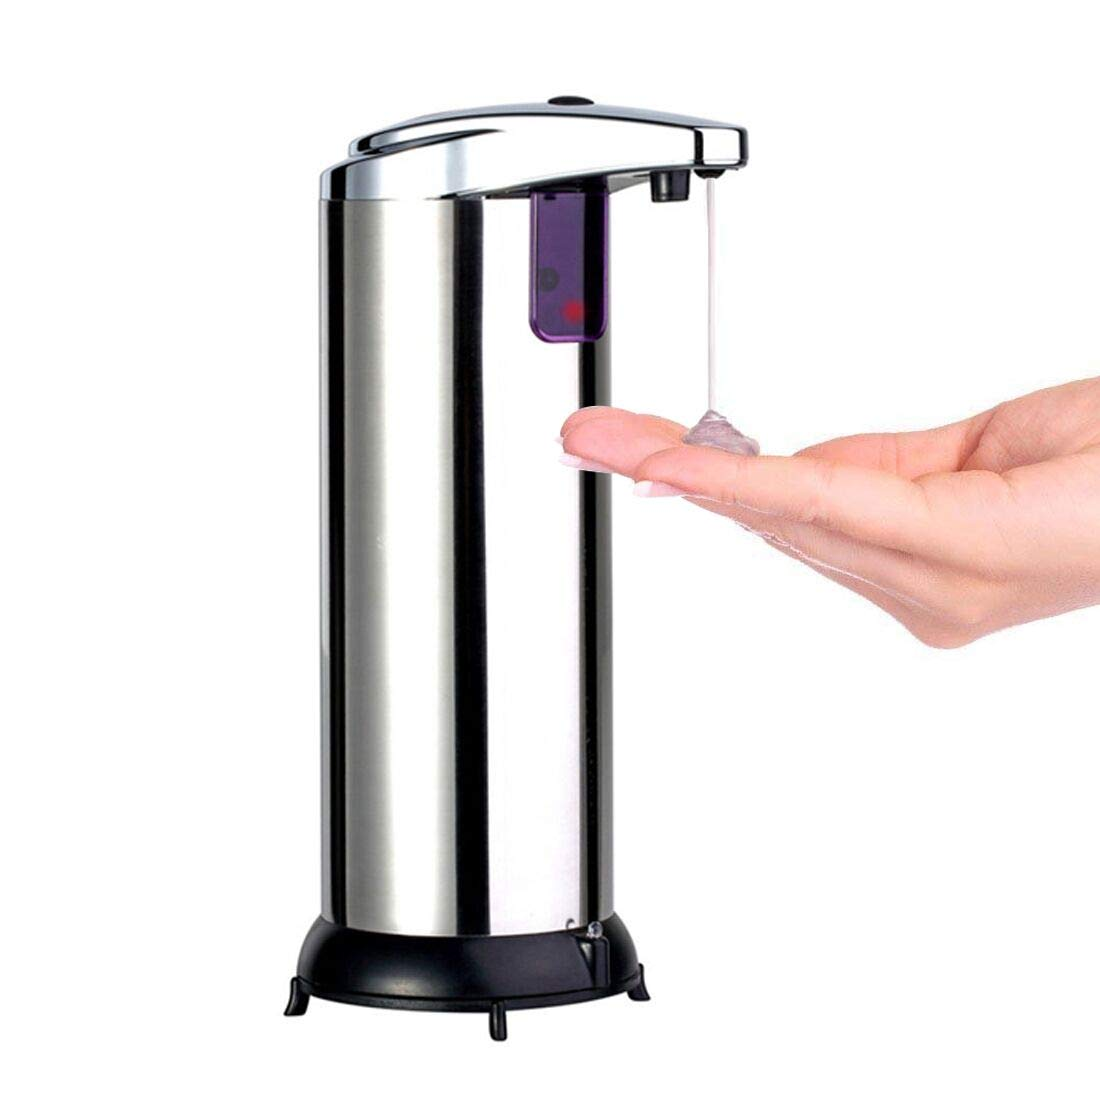 A-szcxtop 280ML Stainless Steel Automatic Soap Dispenser with Waterproof Base